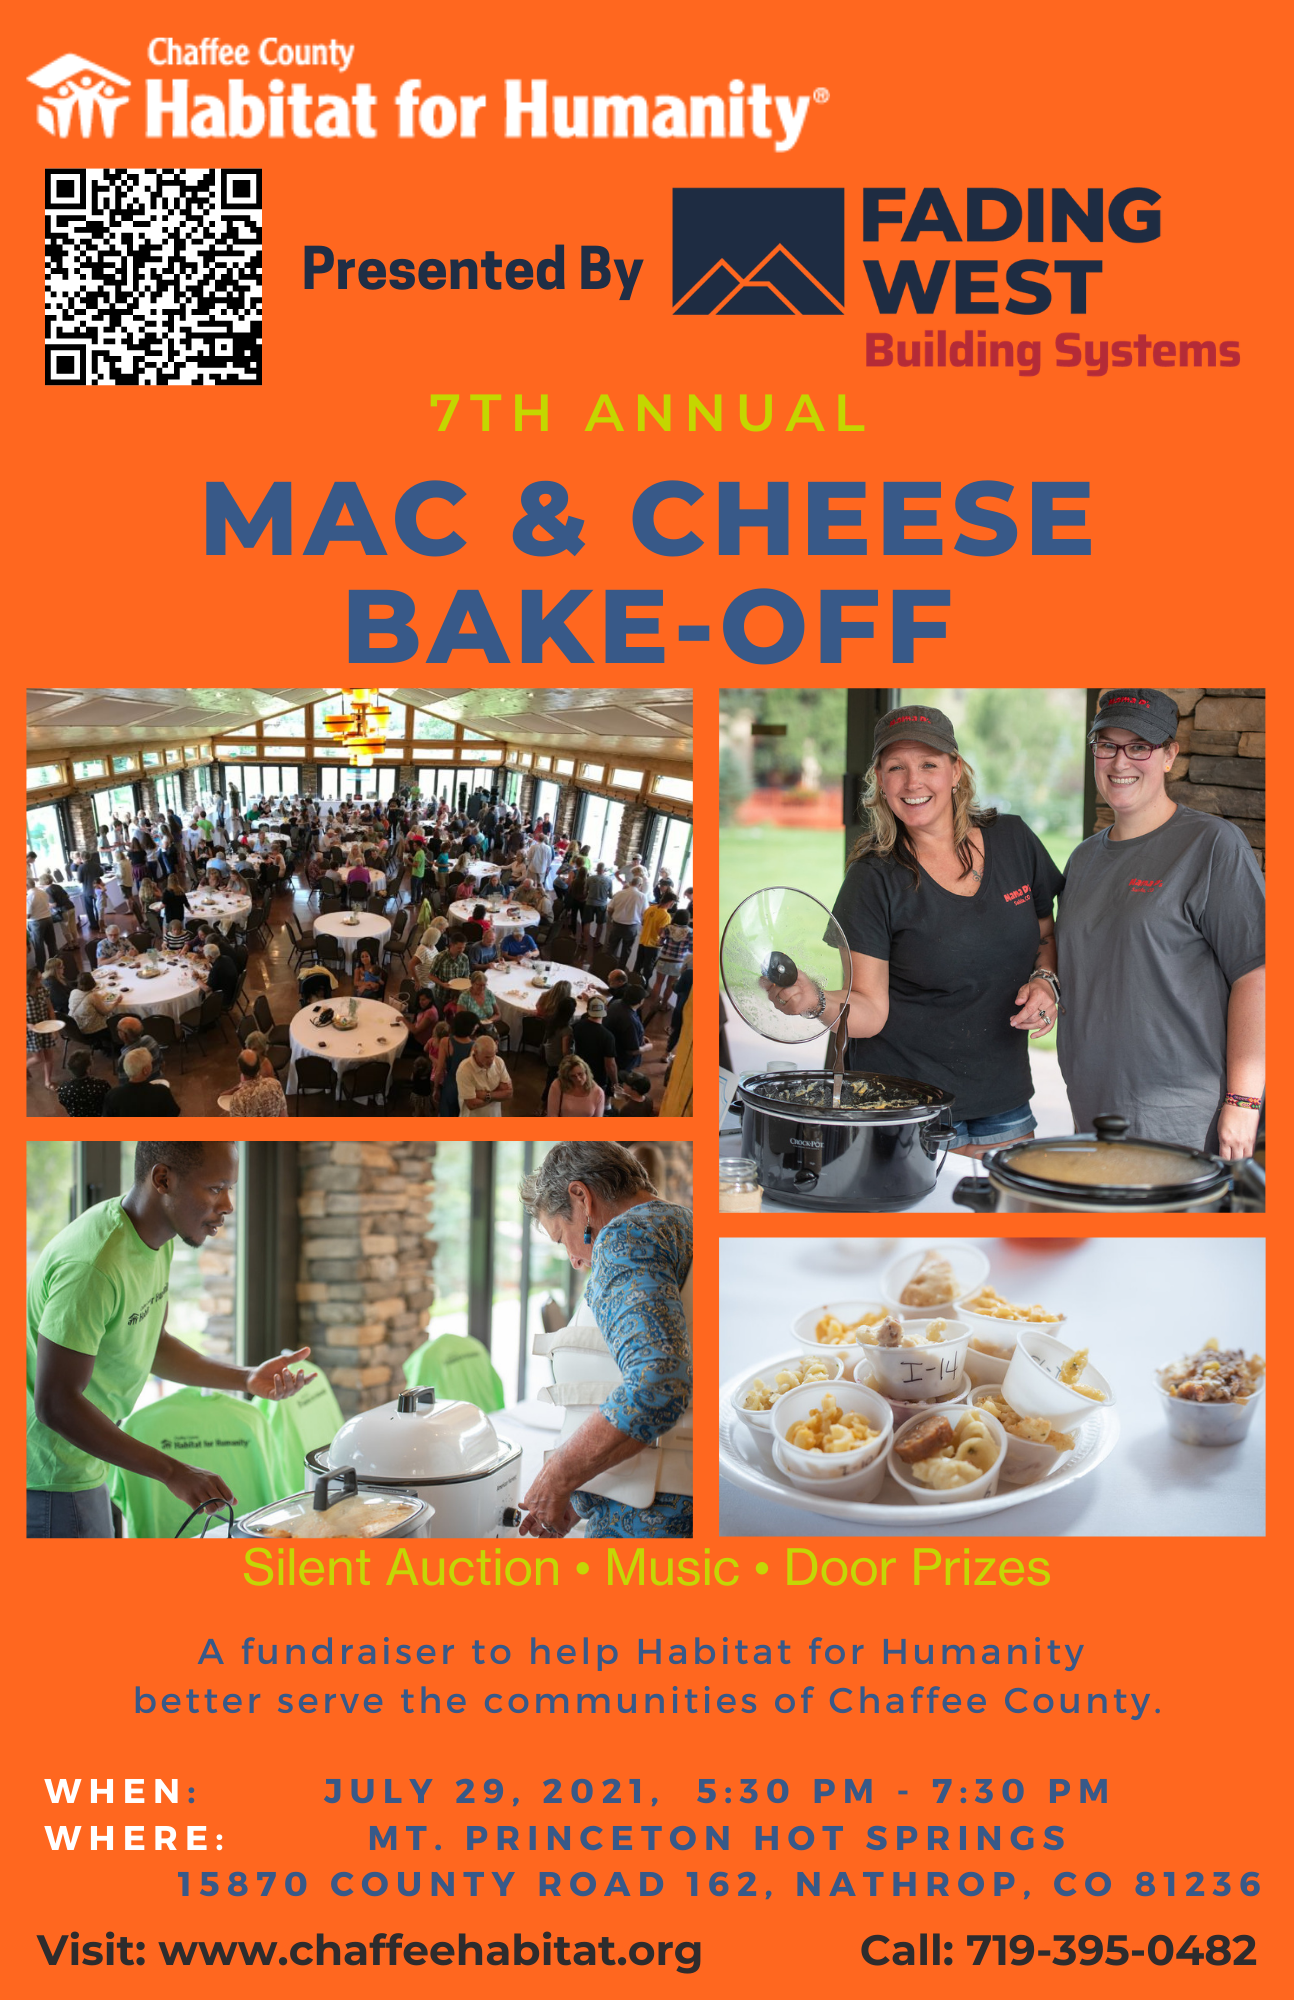 2021 Mac & Cheese Bake-Off/ Silent Auction Fundraiser Event